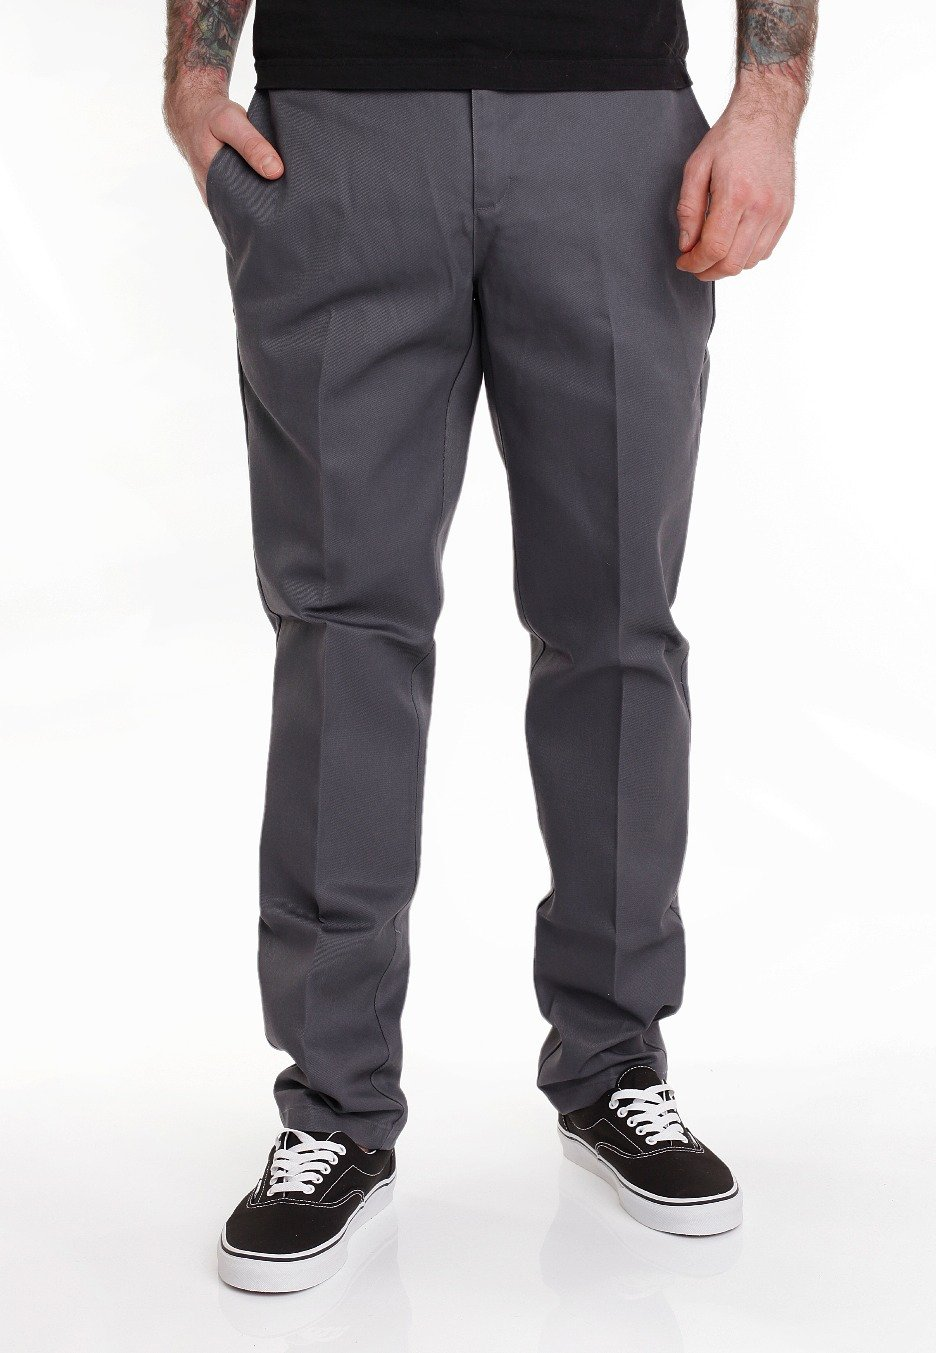 Home Men Pants Work Pants If you are not % satisfied with any item you purchase from Duluth Trading, return it to us at any time for a refund of its purchase price. .